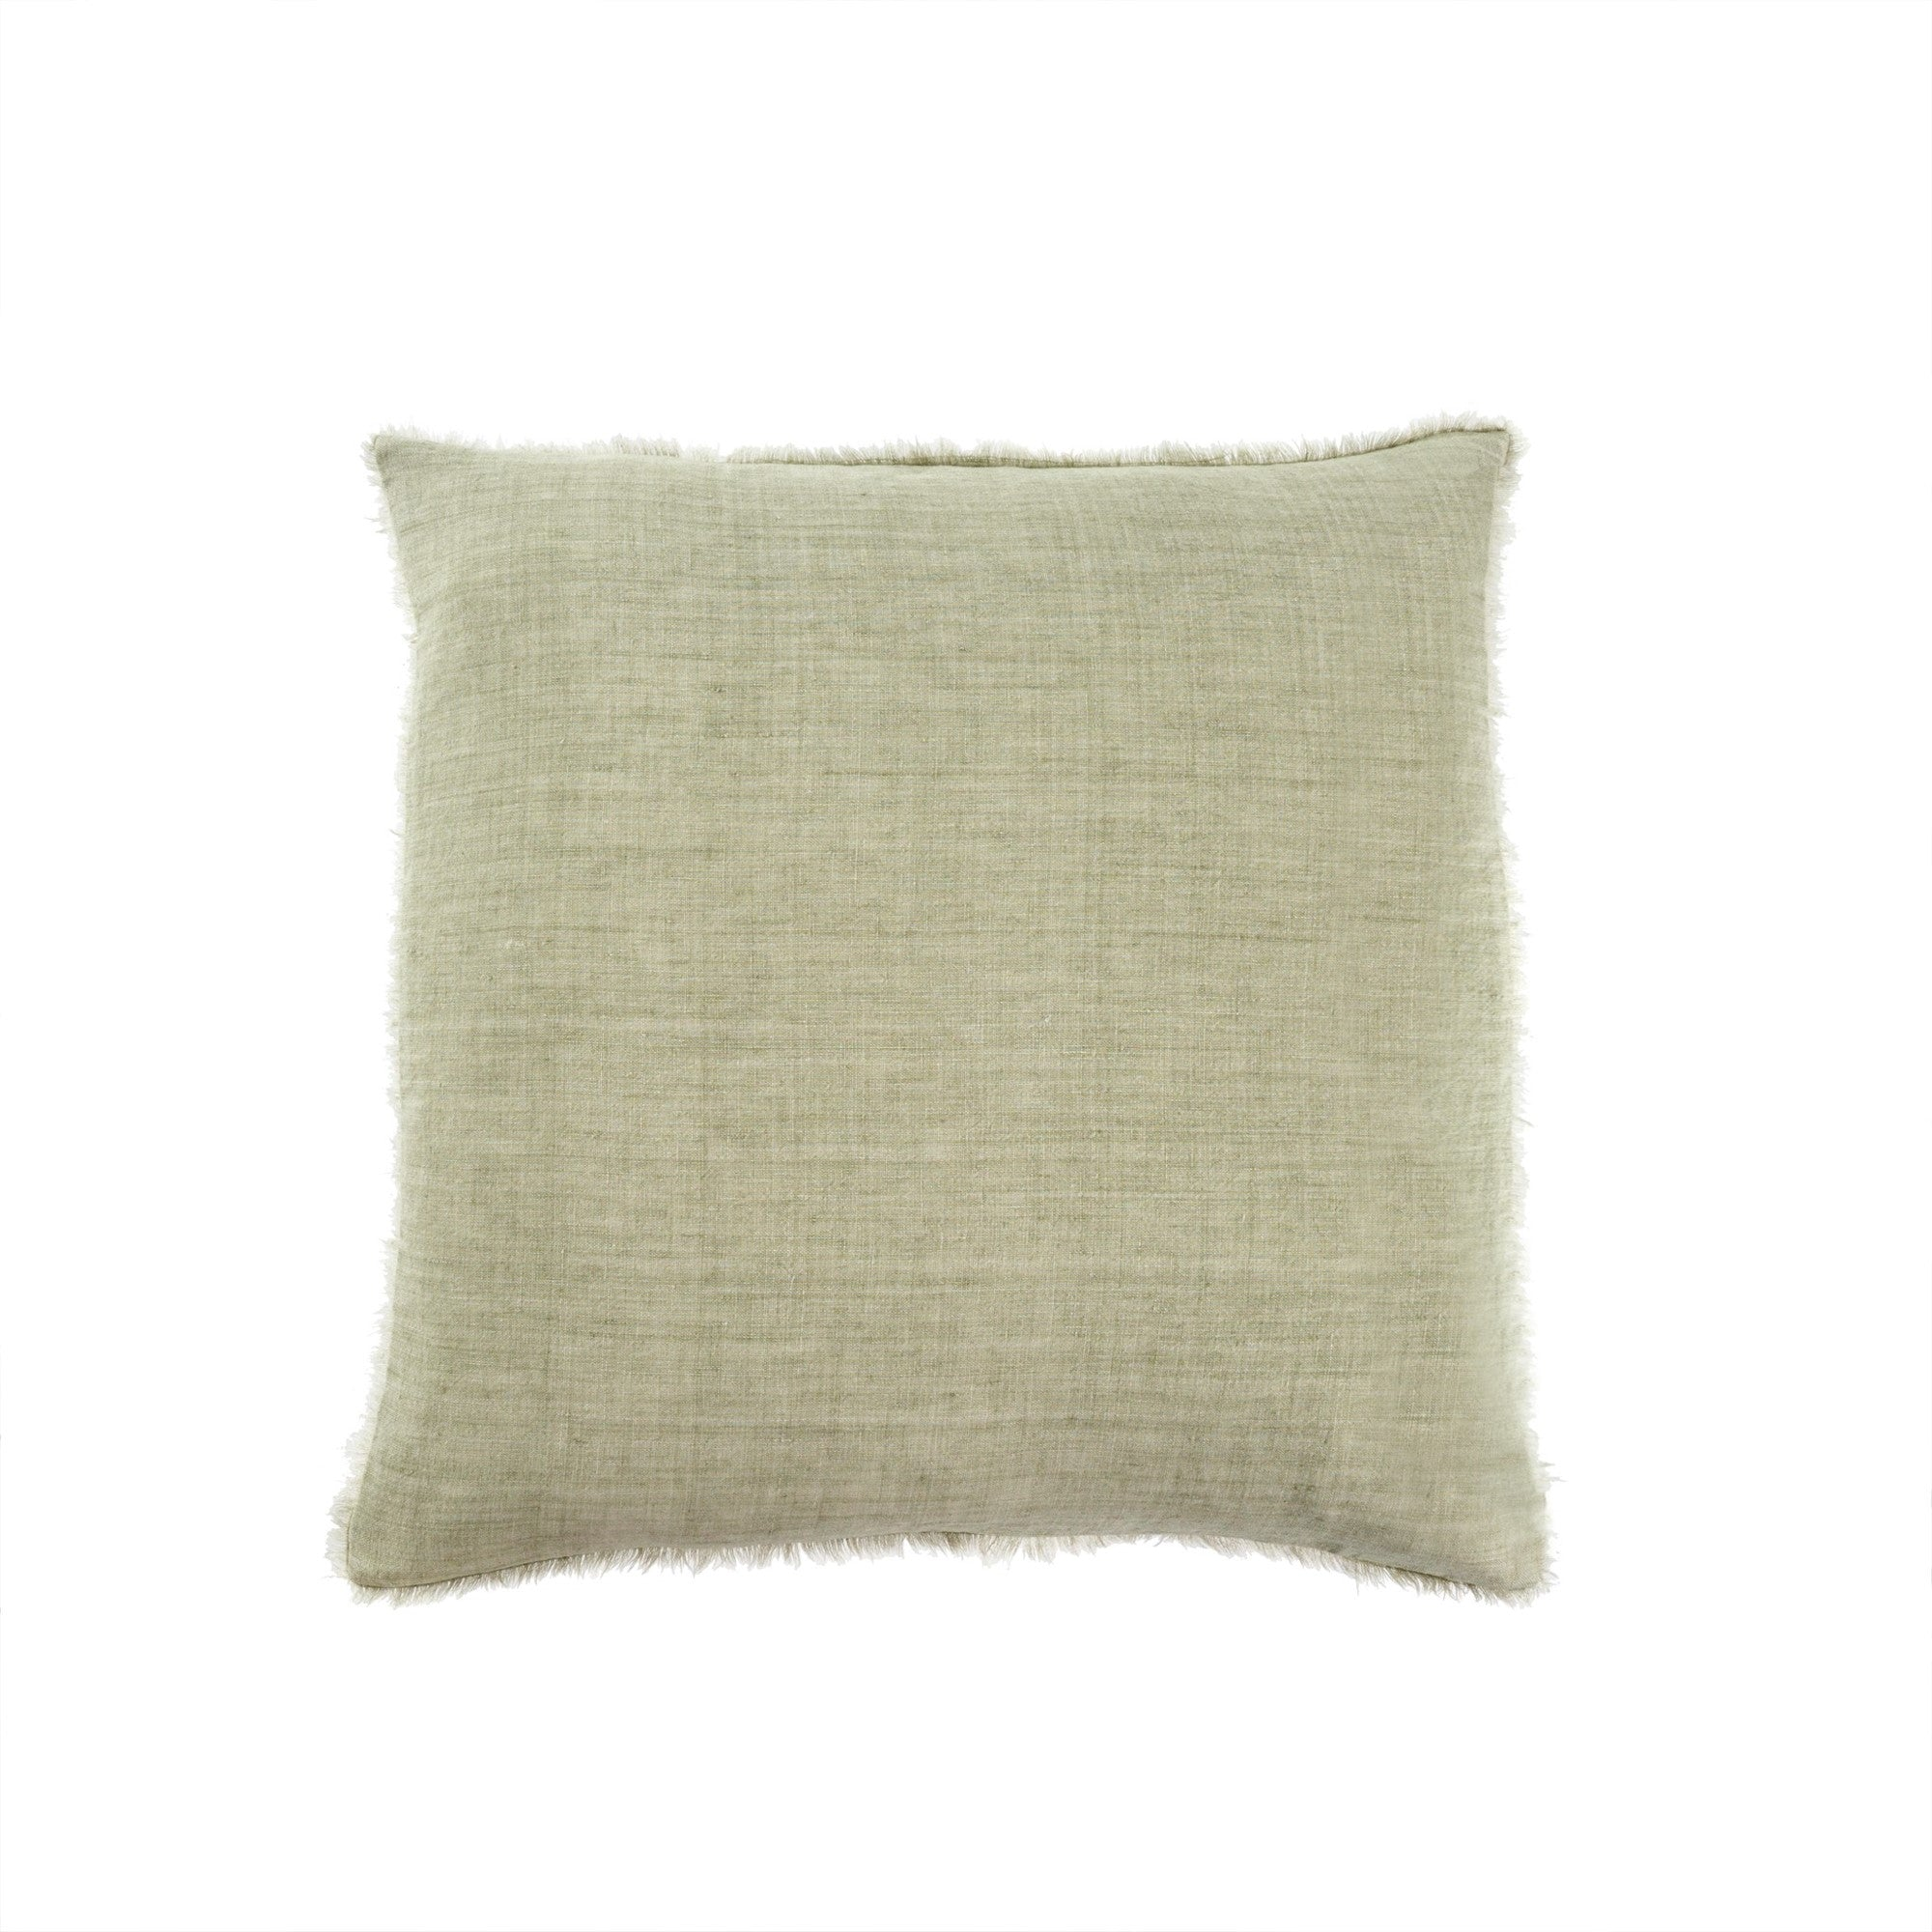 Lina Linen Pillow - Olive | Putti Fine Furnishings